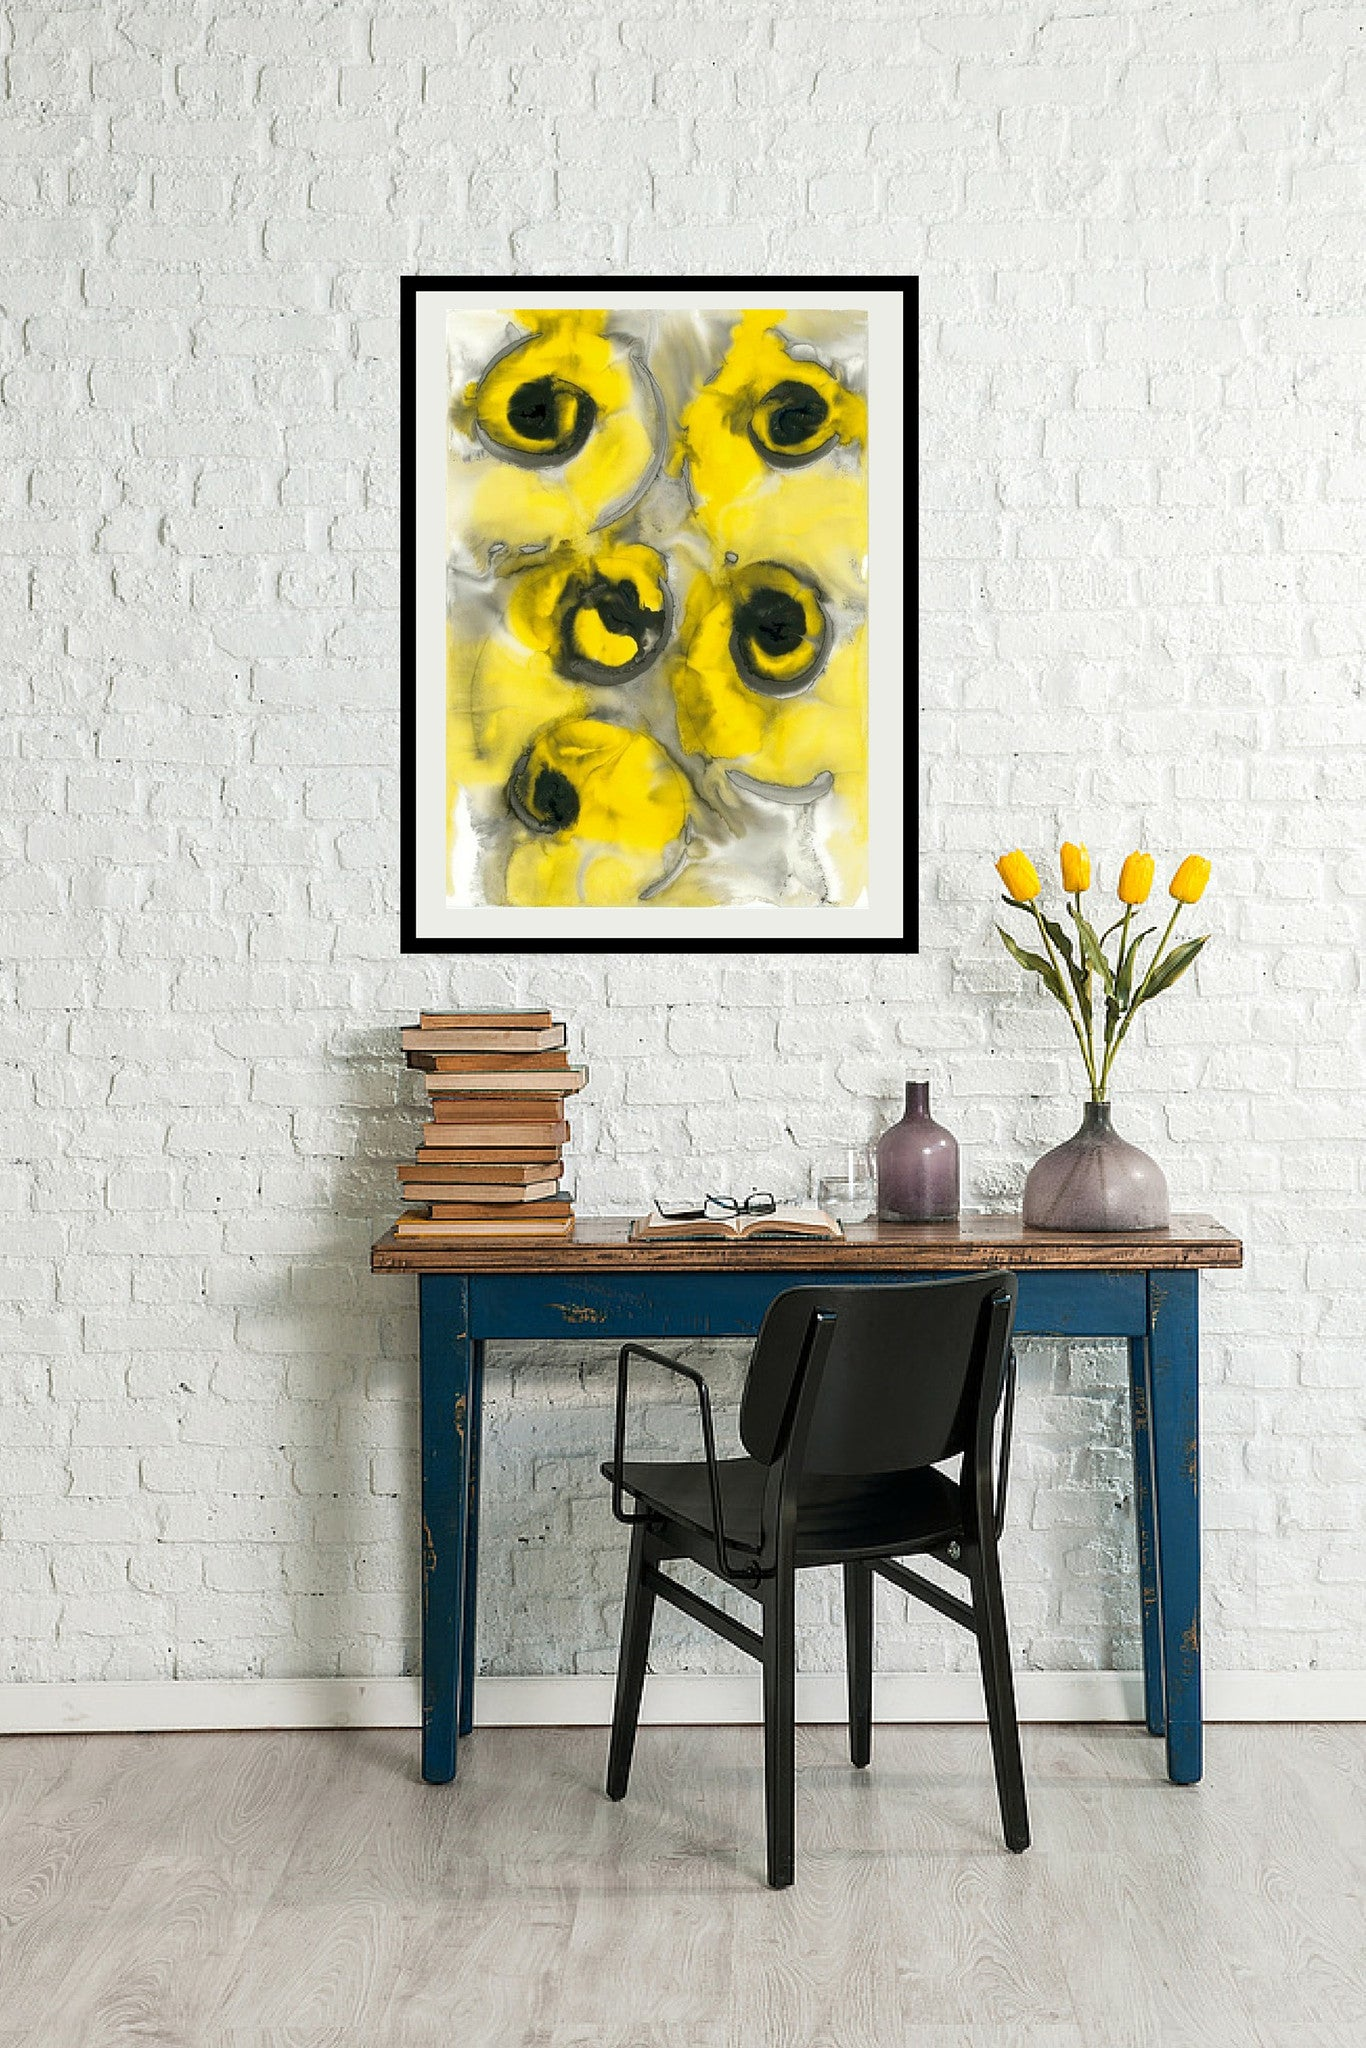 Yellow and Black Original Acrylic Modern Contemporary Artwork Painting by London Based Artist Vera Blagev / Vera Vera On The Wall